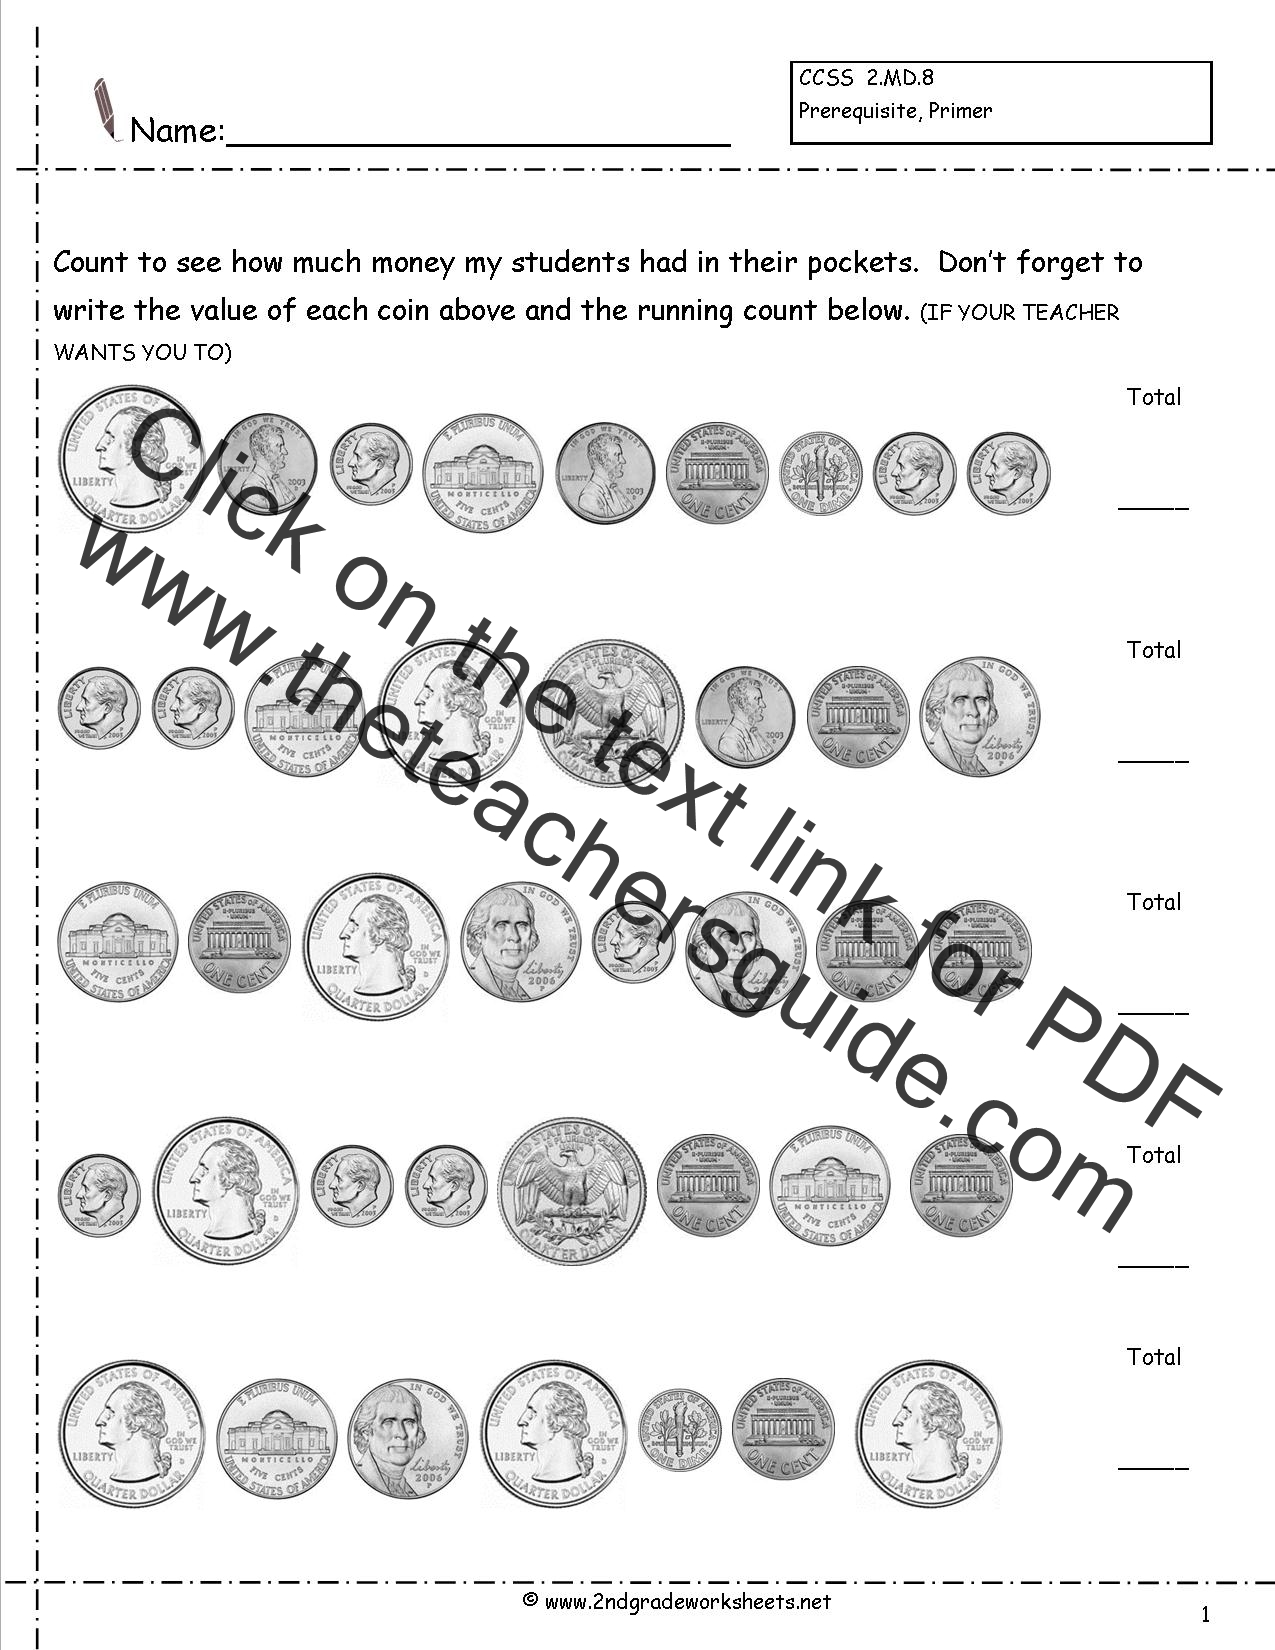 worksheet Count Money Worksheet counting coins and money worksheets printouts worksheets